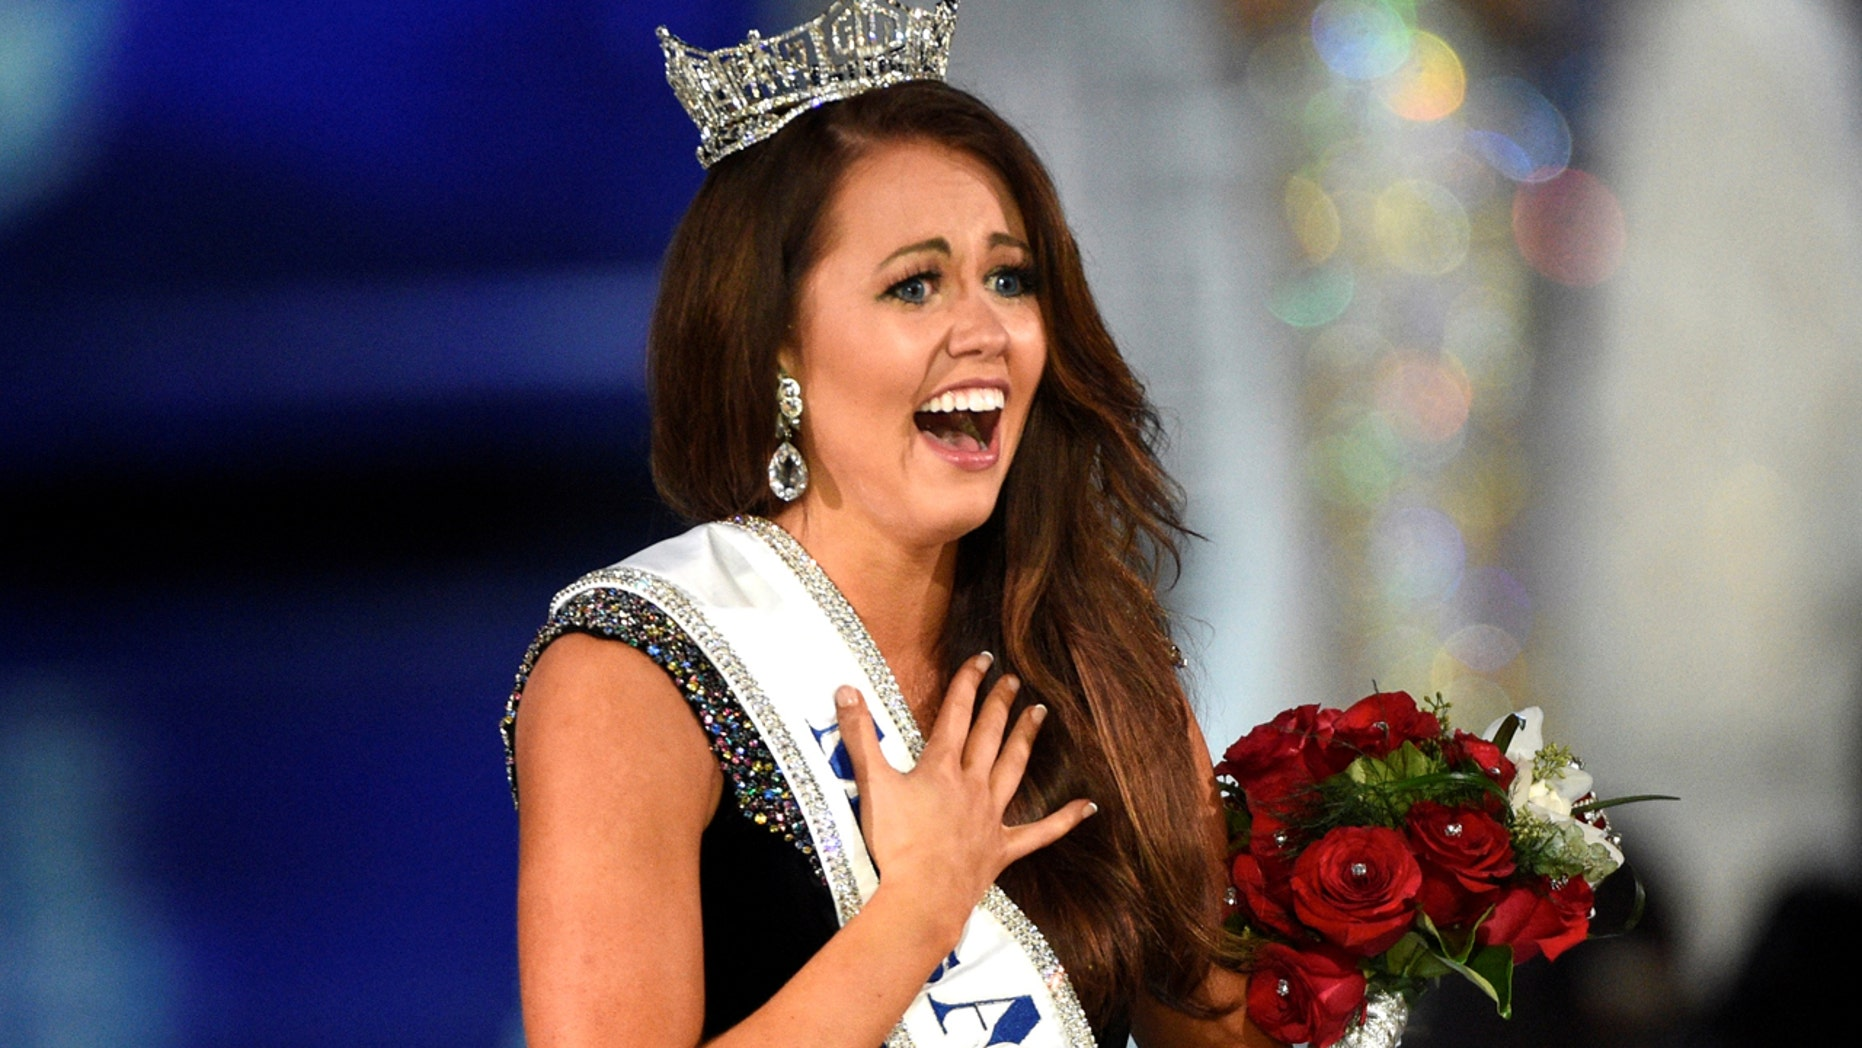 Miss North Dakota Cara Mund reacts after being announced as the winner of the Miss America competition in Atlantic City, New Jersey, U.S. September 10, 2017.  REUTERS/Mark Makela - RC14B81B1000